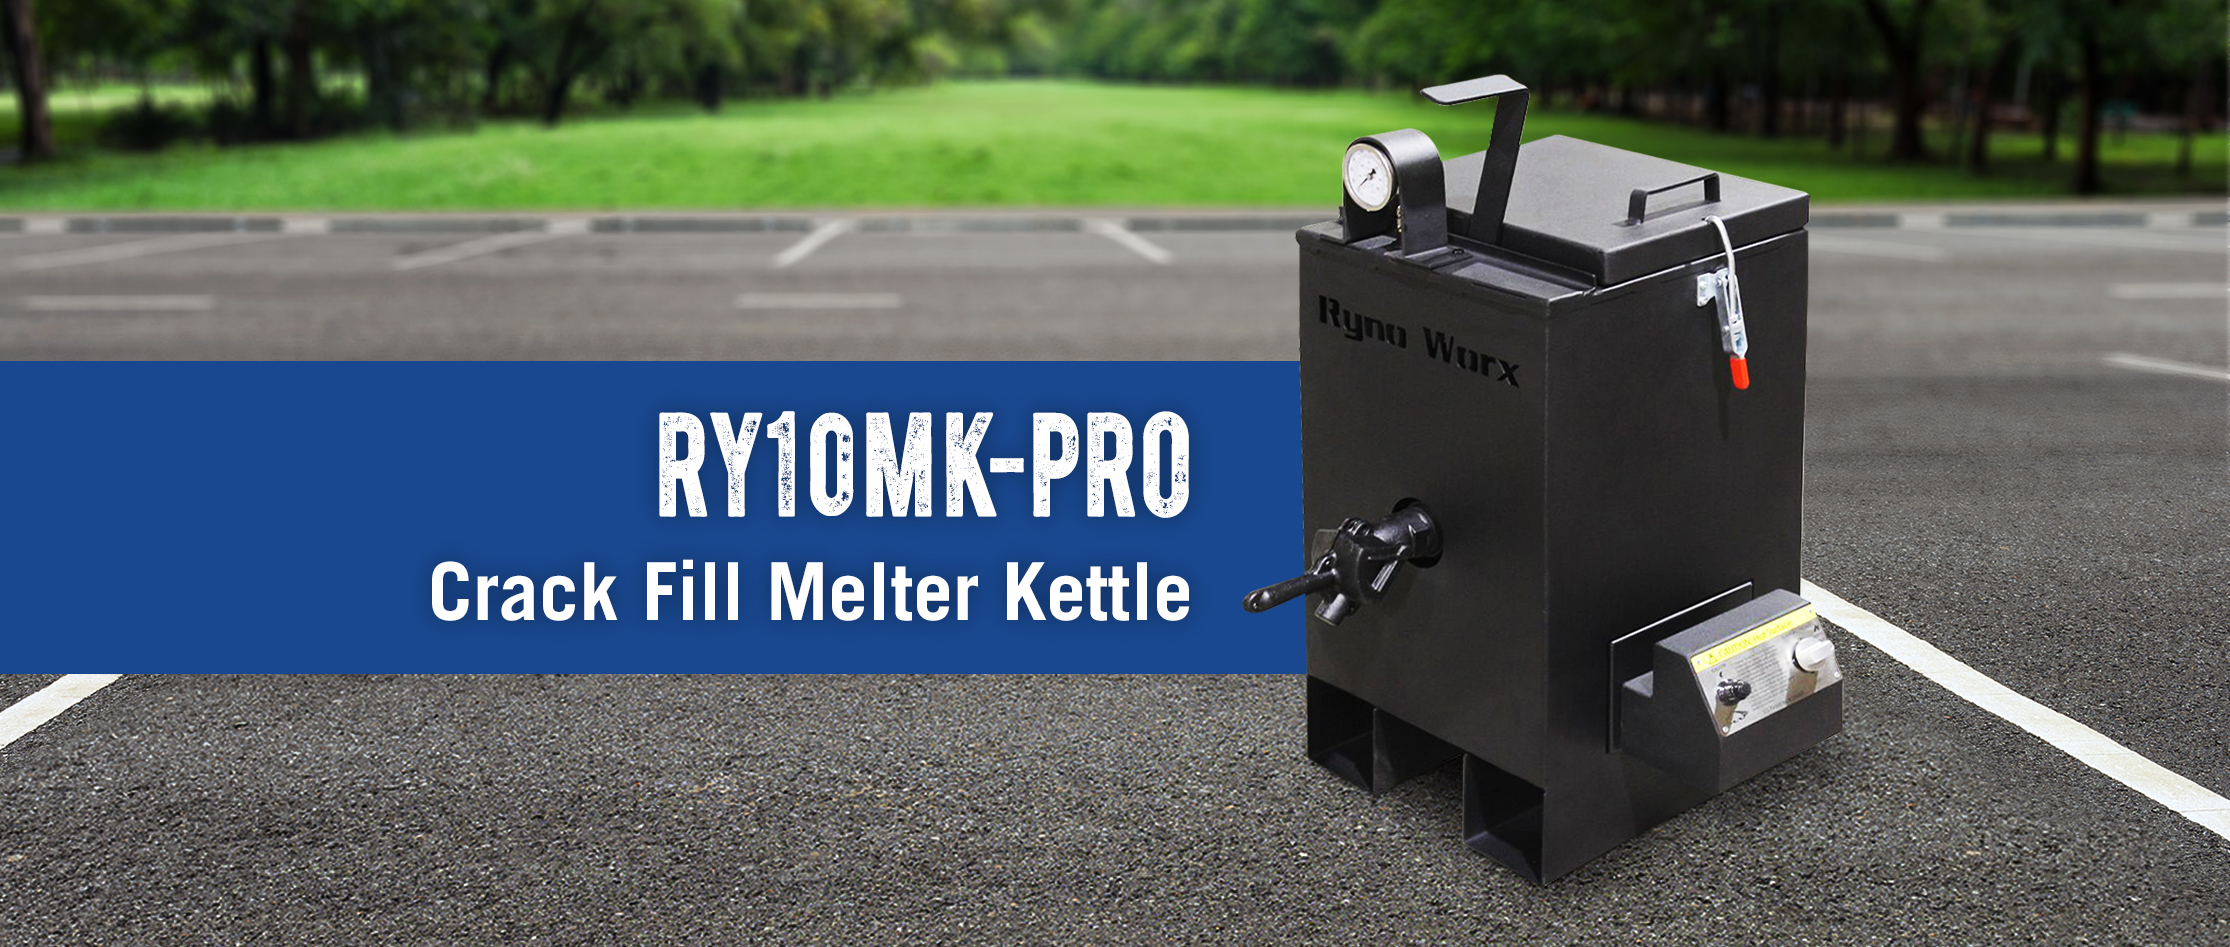 RY10 Crack Fill Melter Kettle